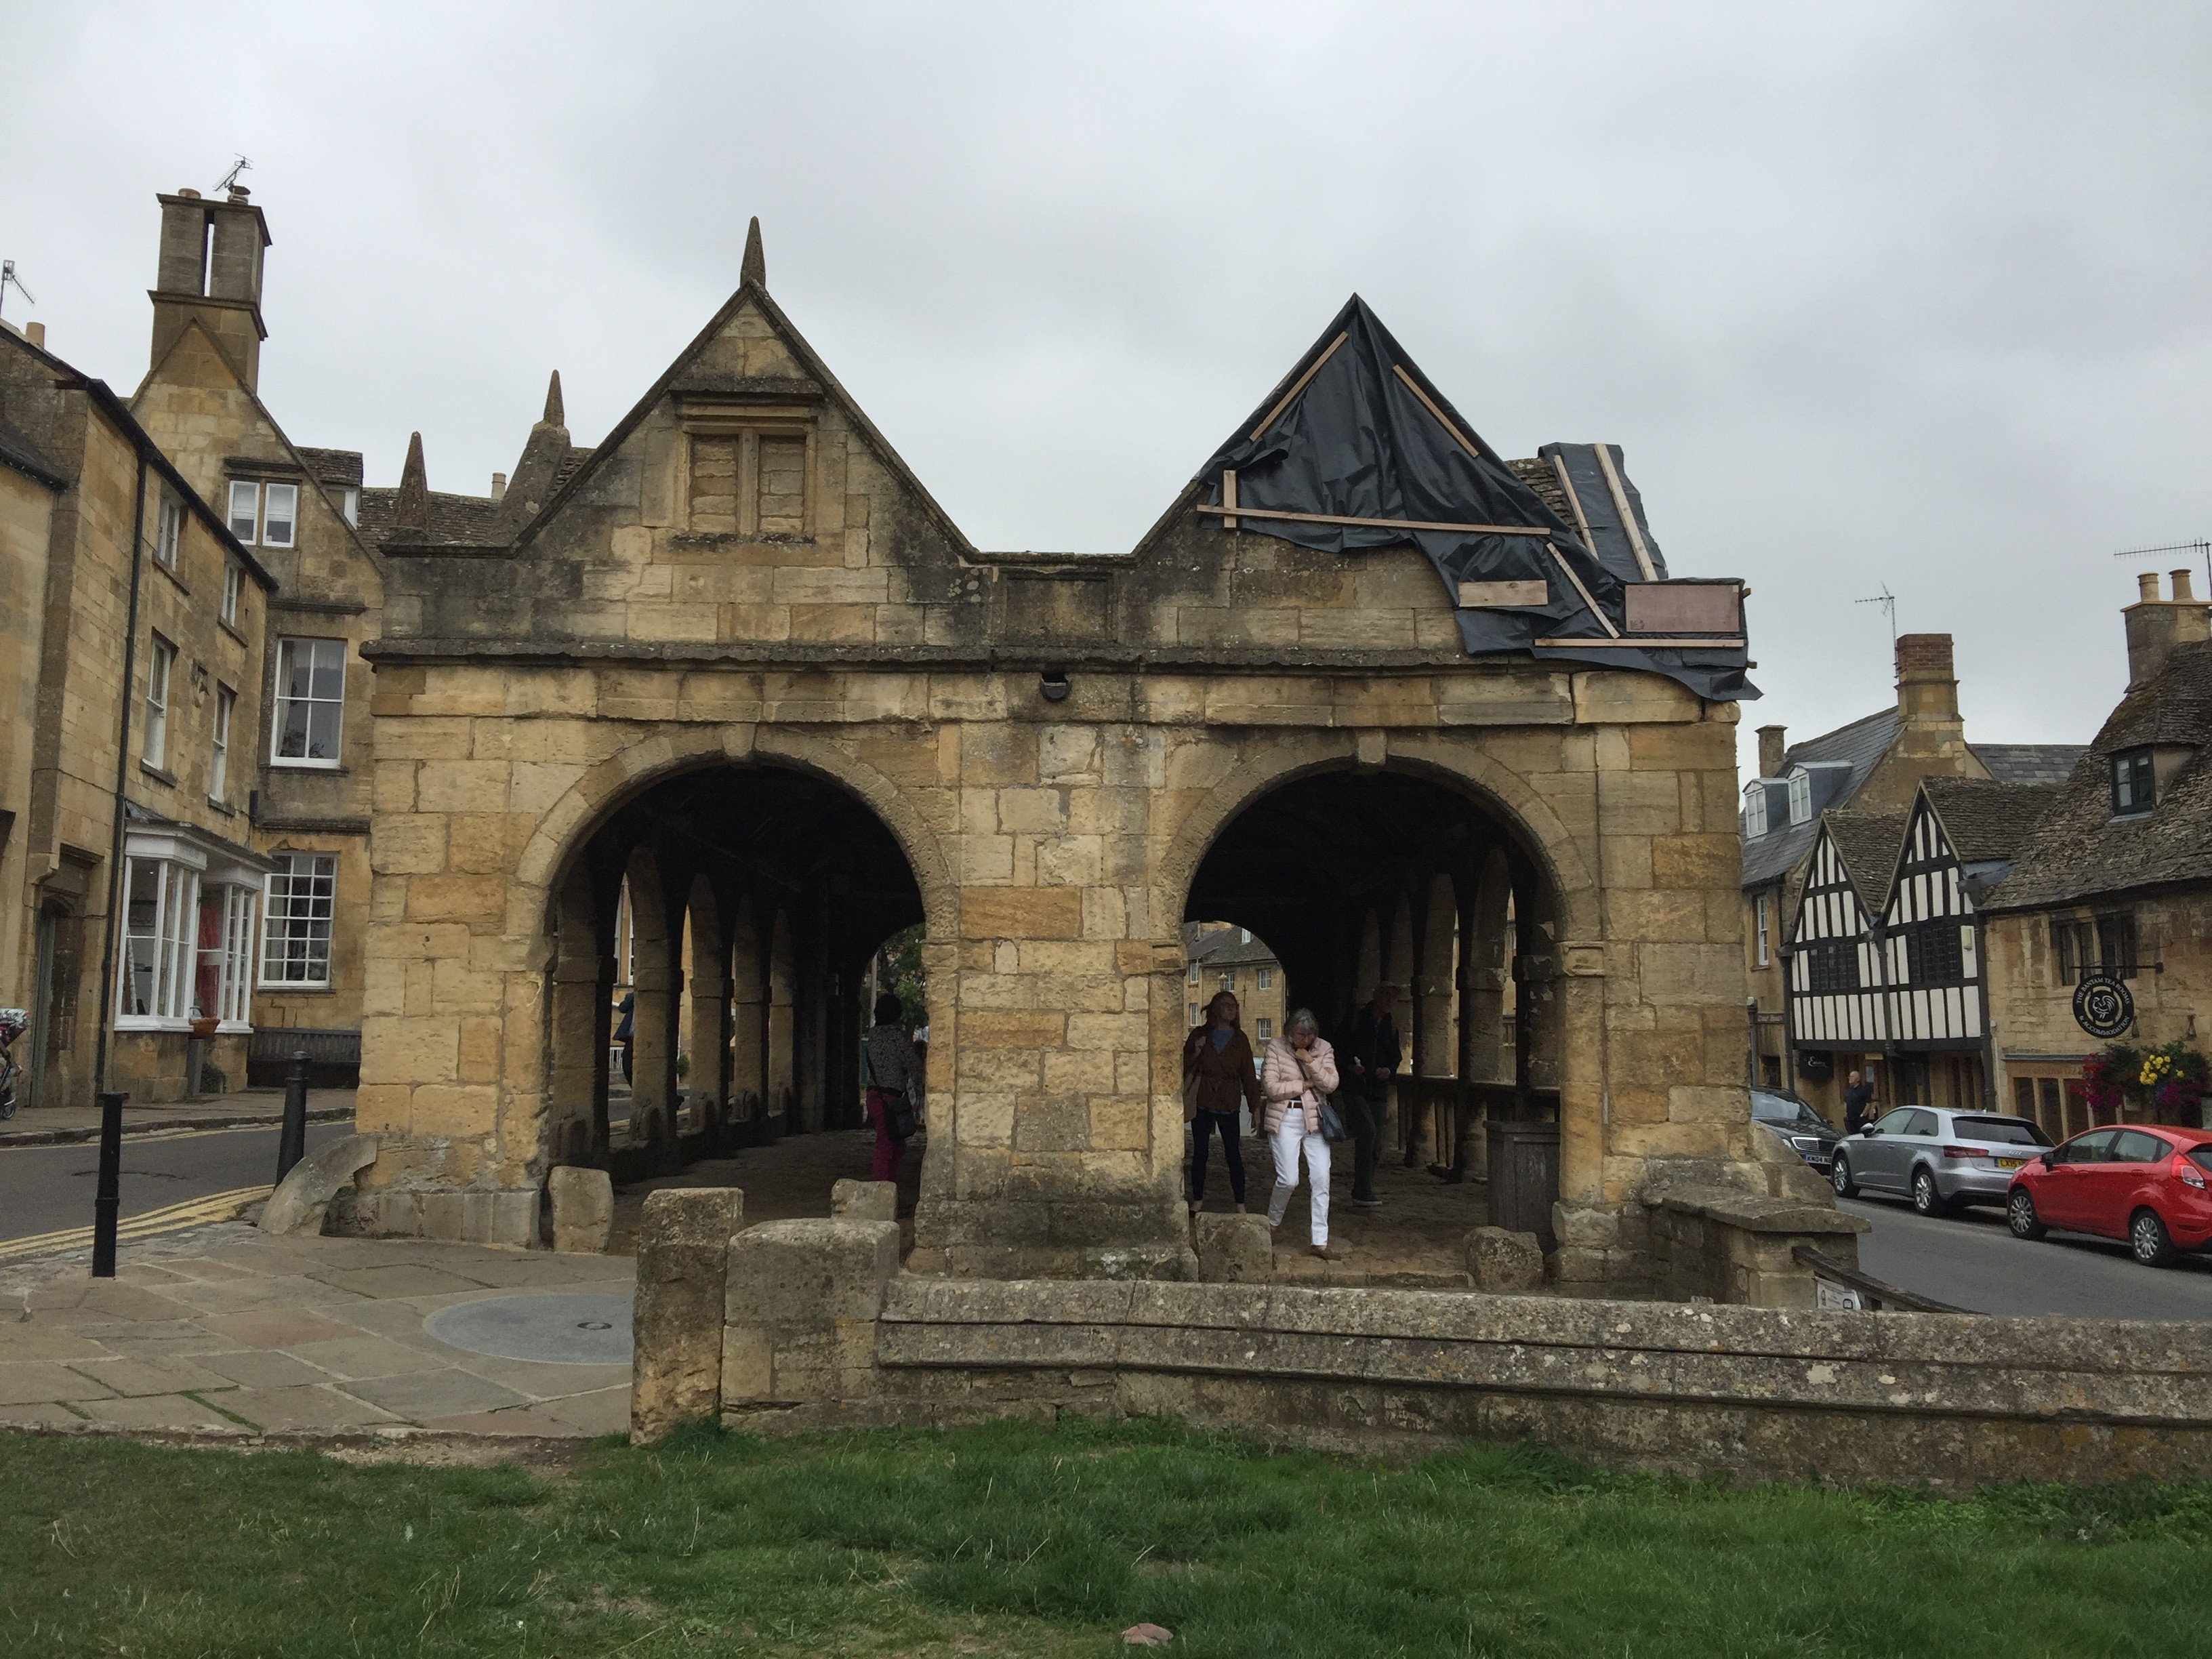 Chipping Camden on the Cotswold Way